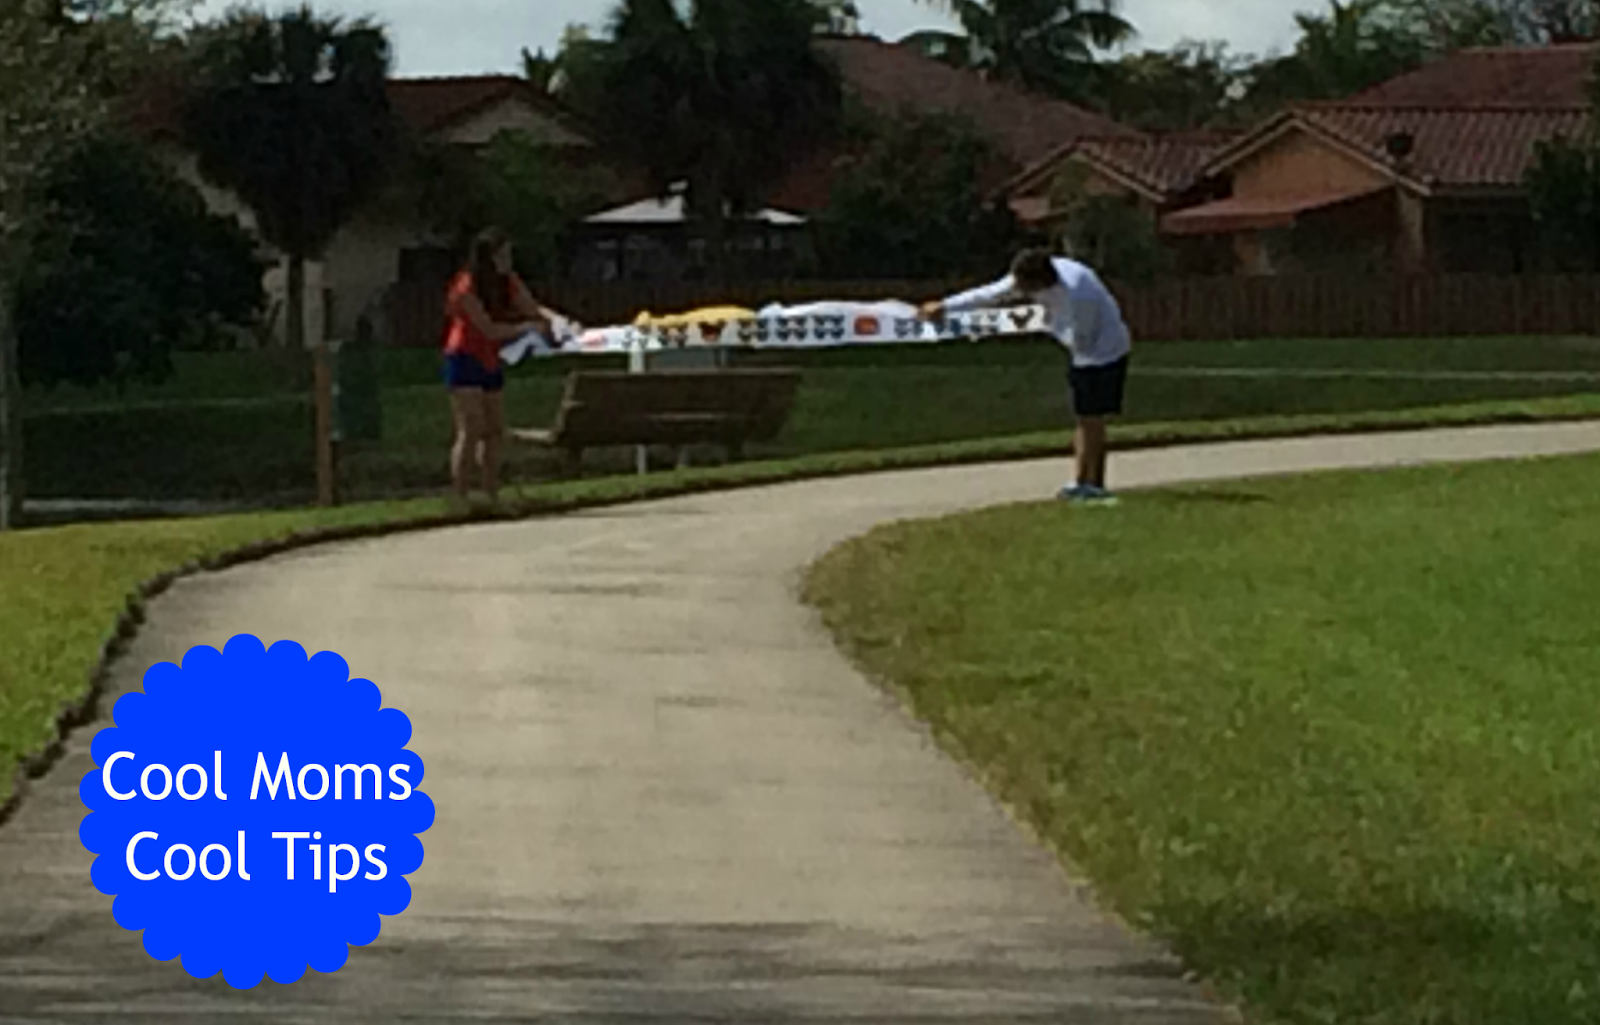 cool moms cool tips finish line ribbon for a race DIY